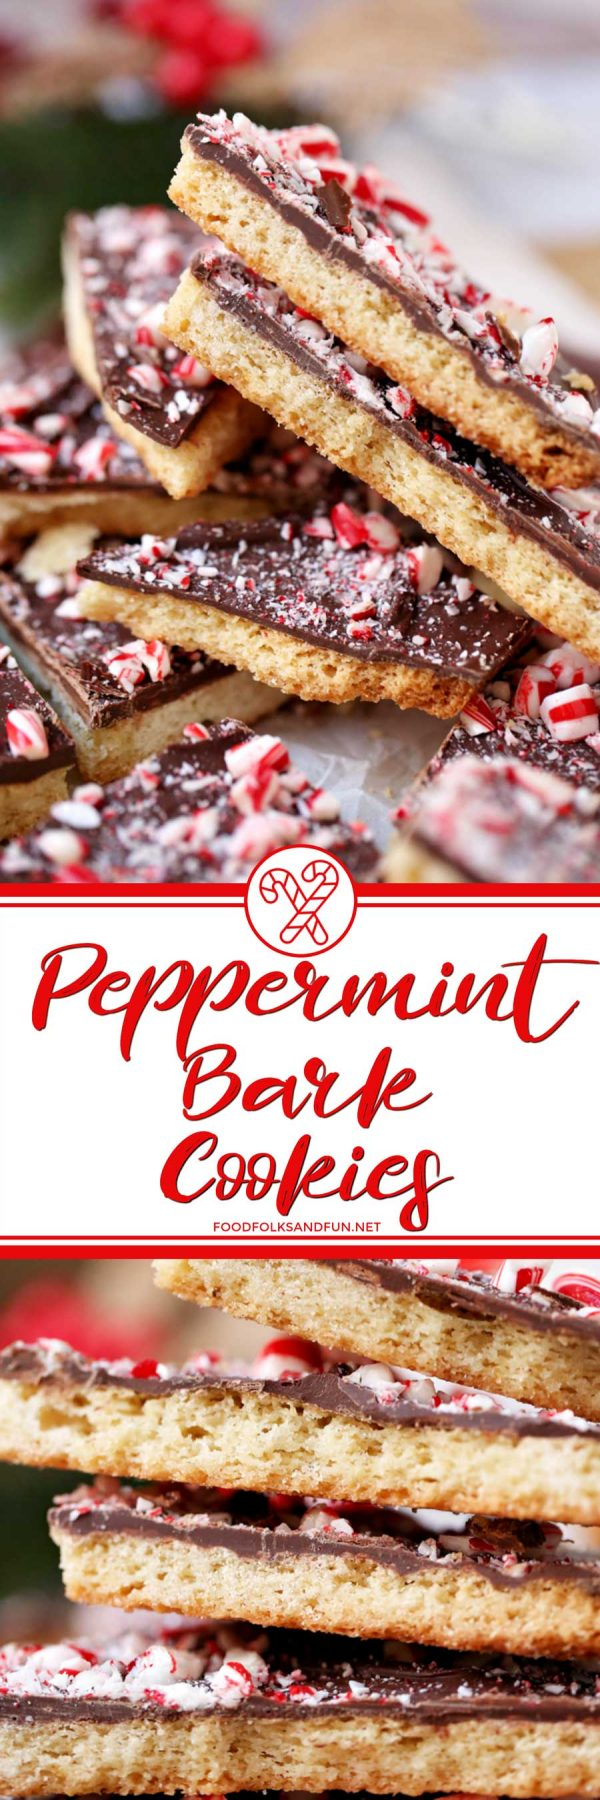 Shortbread Peppermint Bark Cookies picture collage for Pinterest.